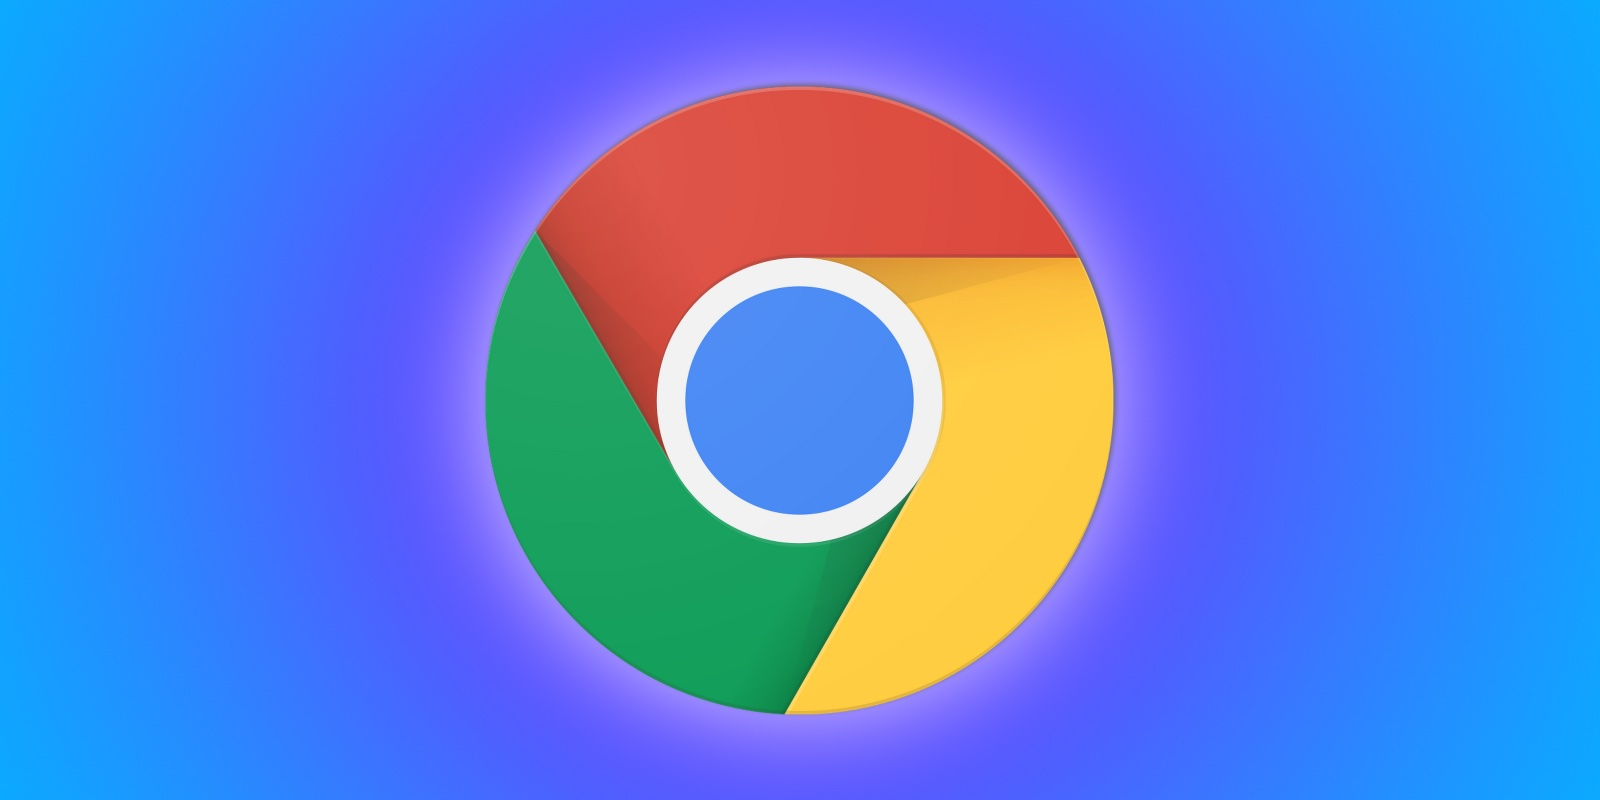 An illustration showing the Google Chrome browser logo set against a colorful background